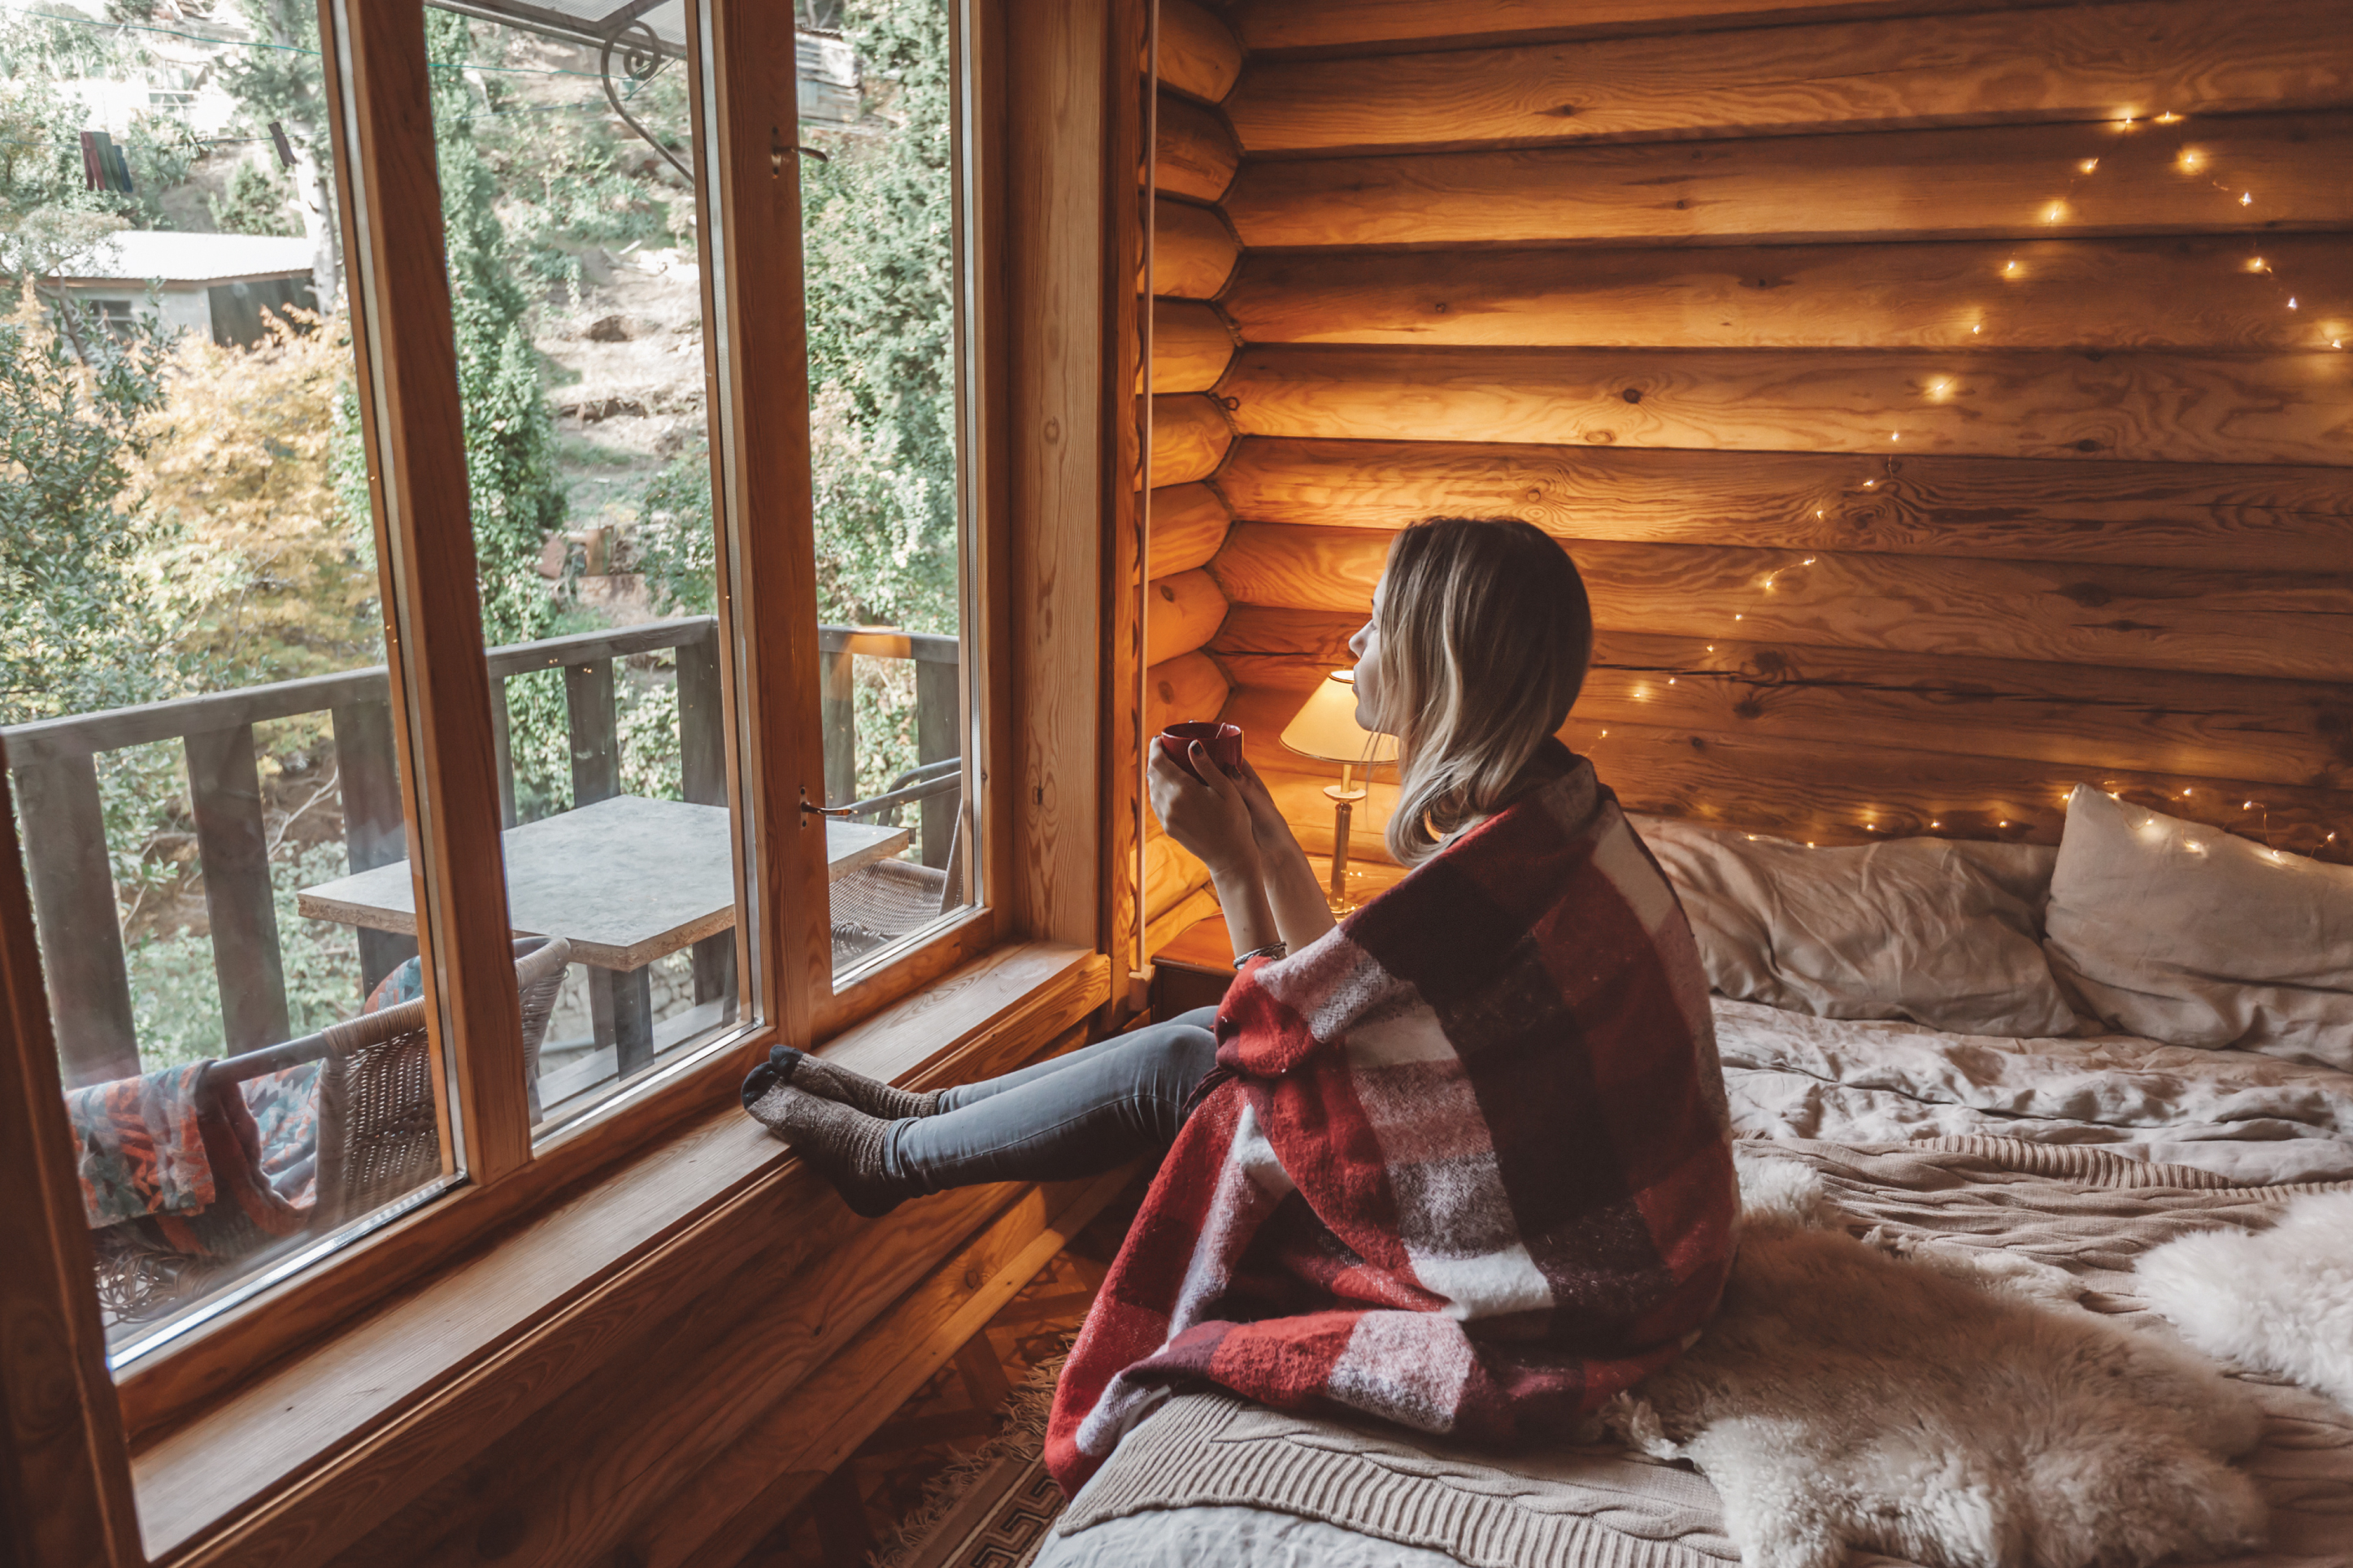 a woman drinking coffee, looking about a window from inside an ADU